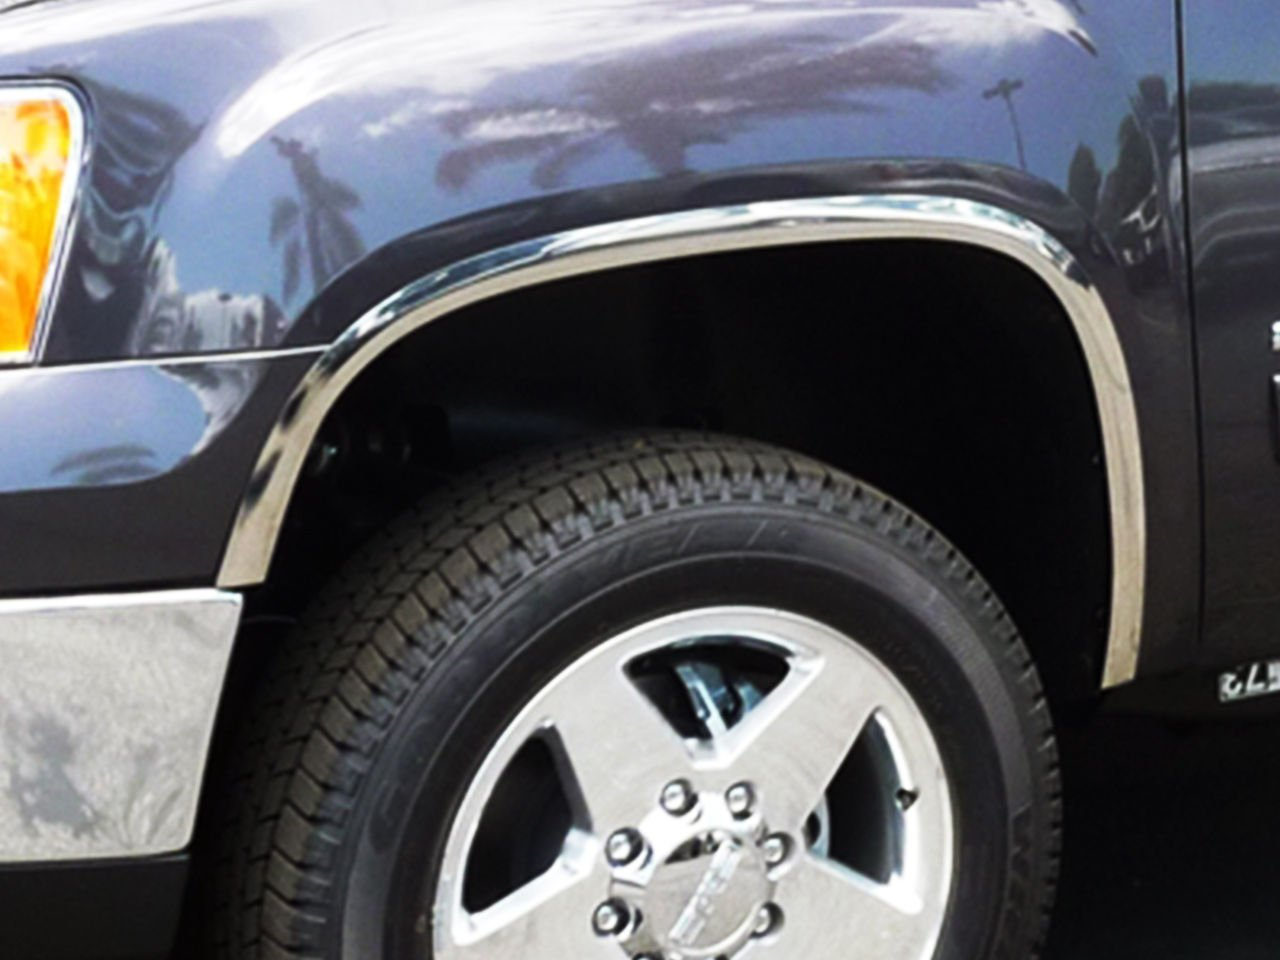 FTGM206 2007-2010 GMC Sierra 2500 HD Polished Stainless Steel Fender Trim